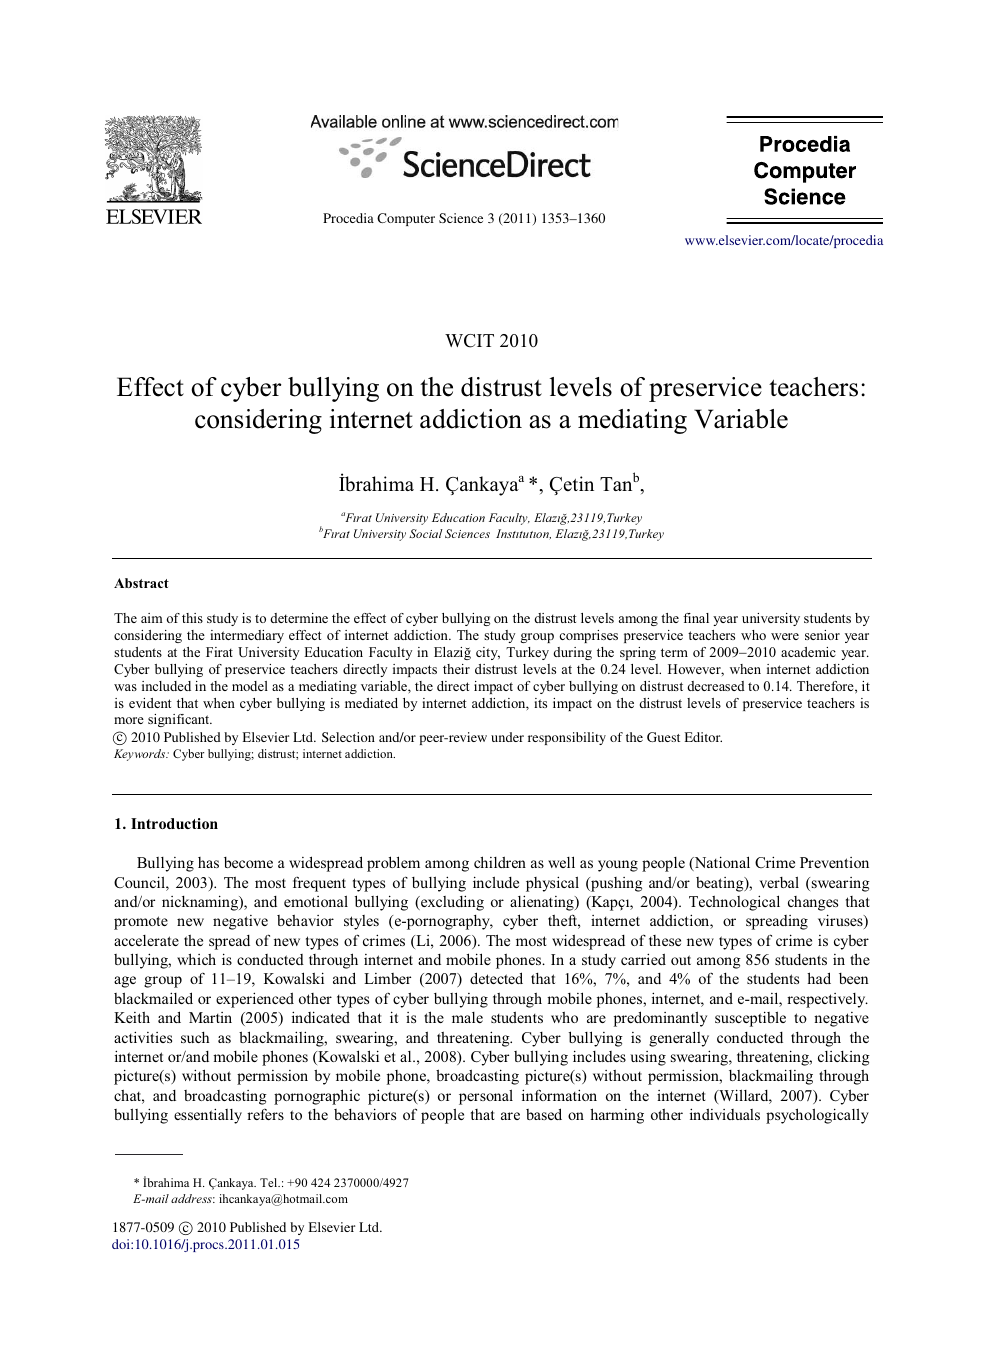 Effect of cyber bullying on the distrust levels of